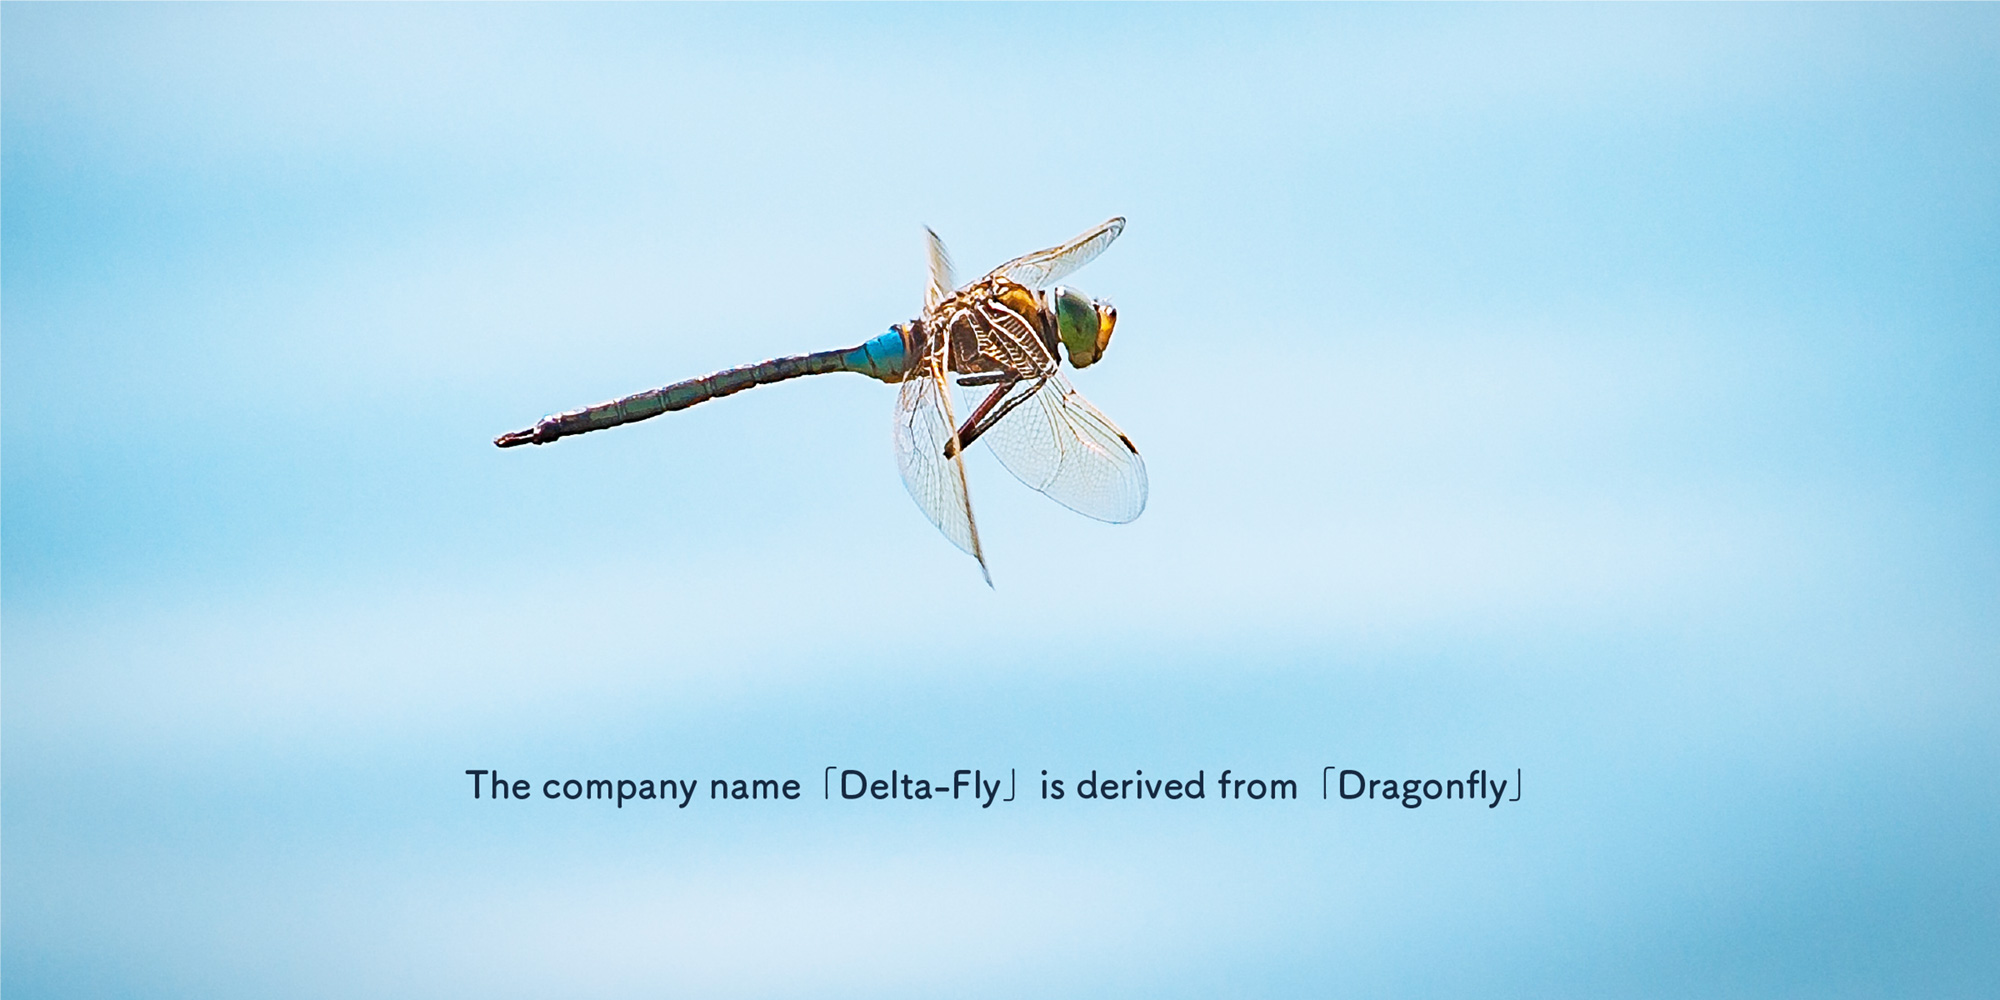 The company name 「Delta-Fly」 is derived from 「Dragonfly」